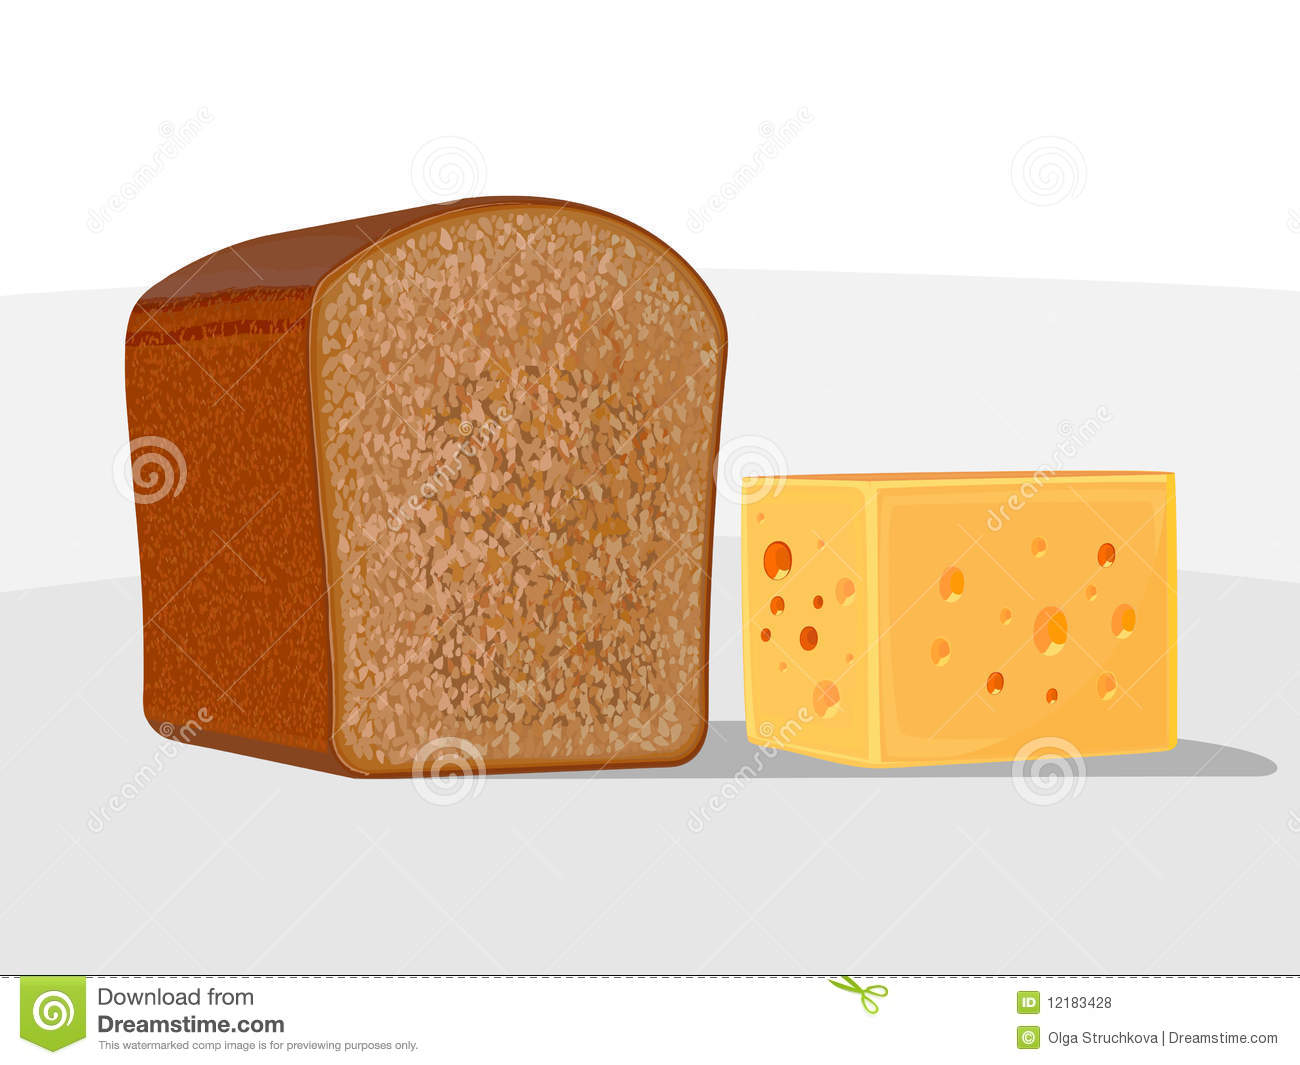 Bread and cheese clipart 7 » Clipart Station.